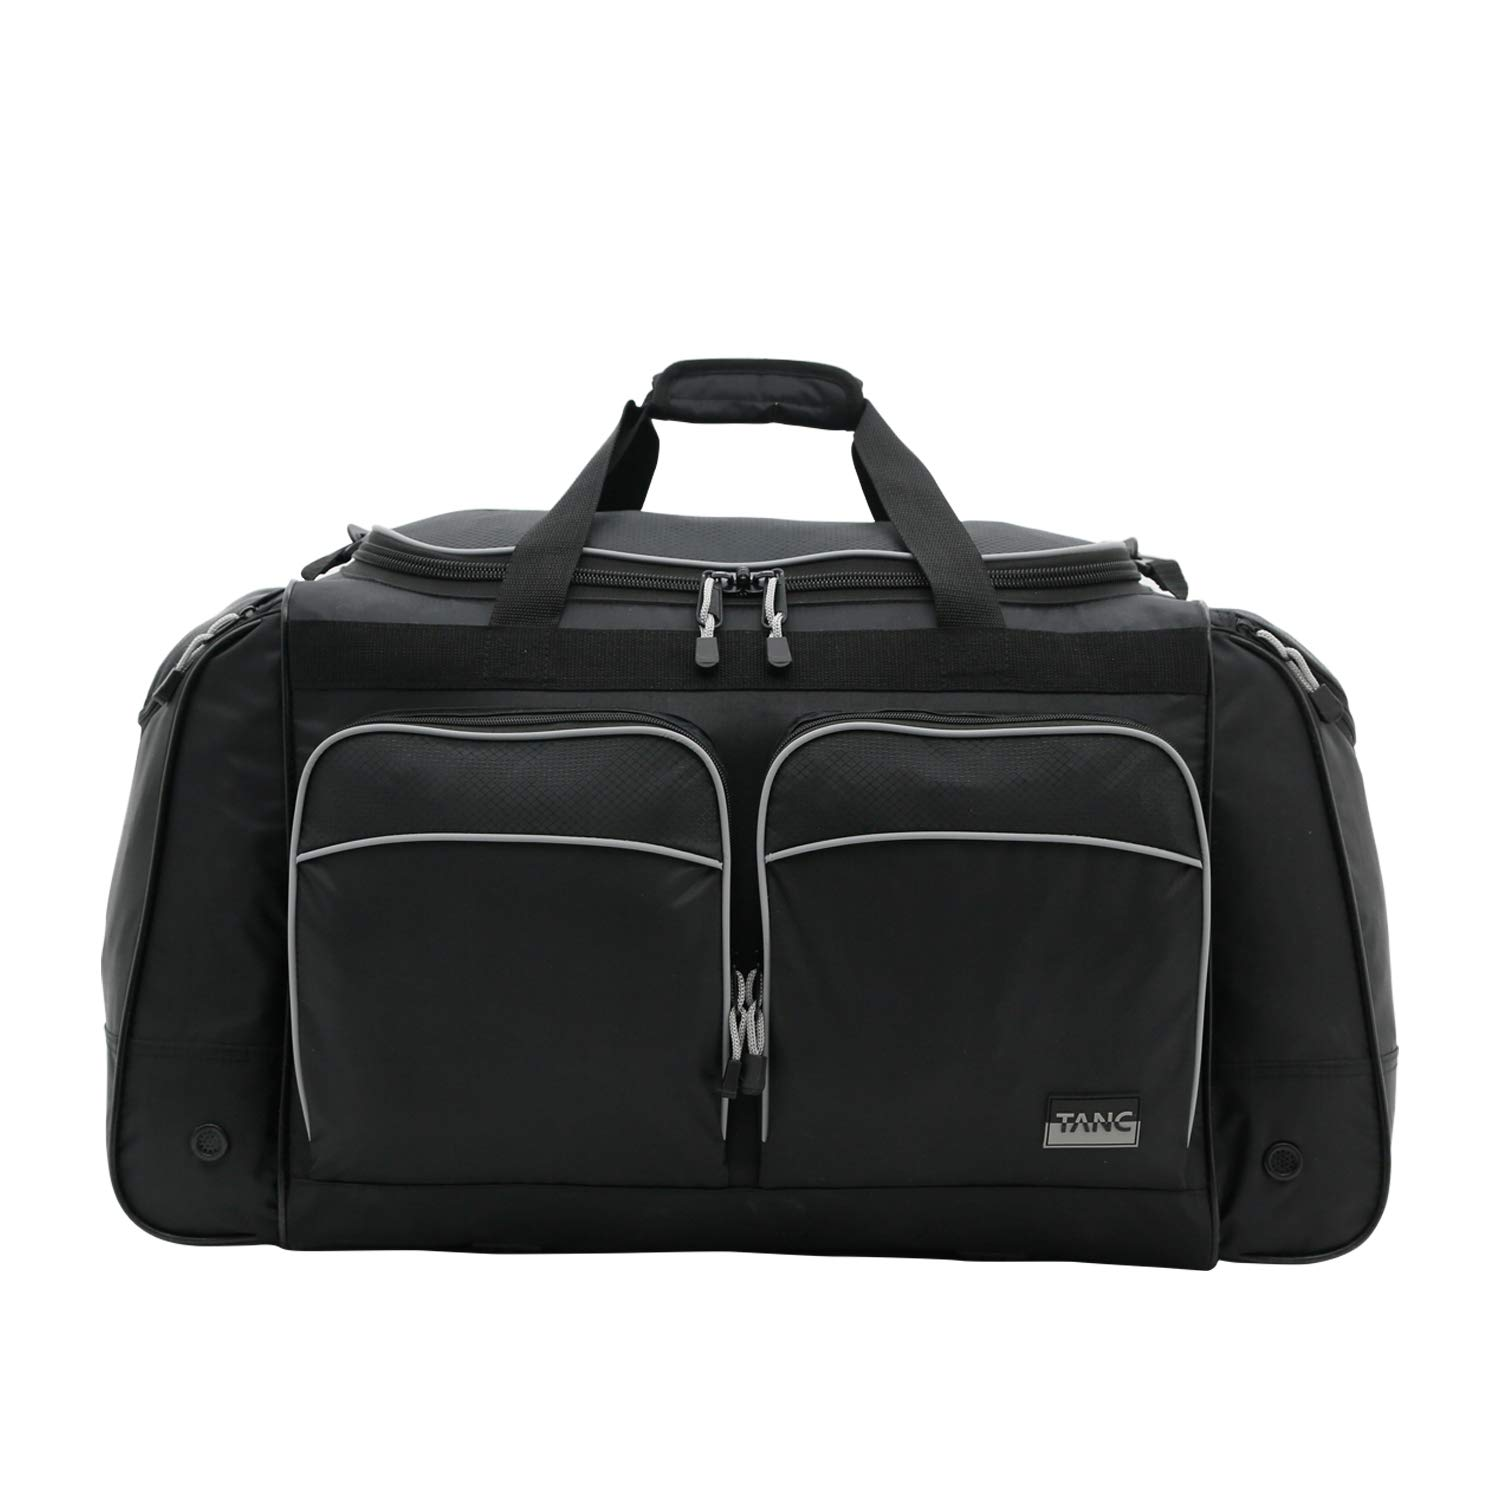 Great Quality Bag for Travel!